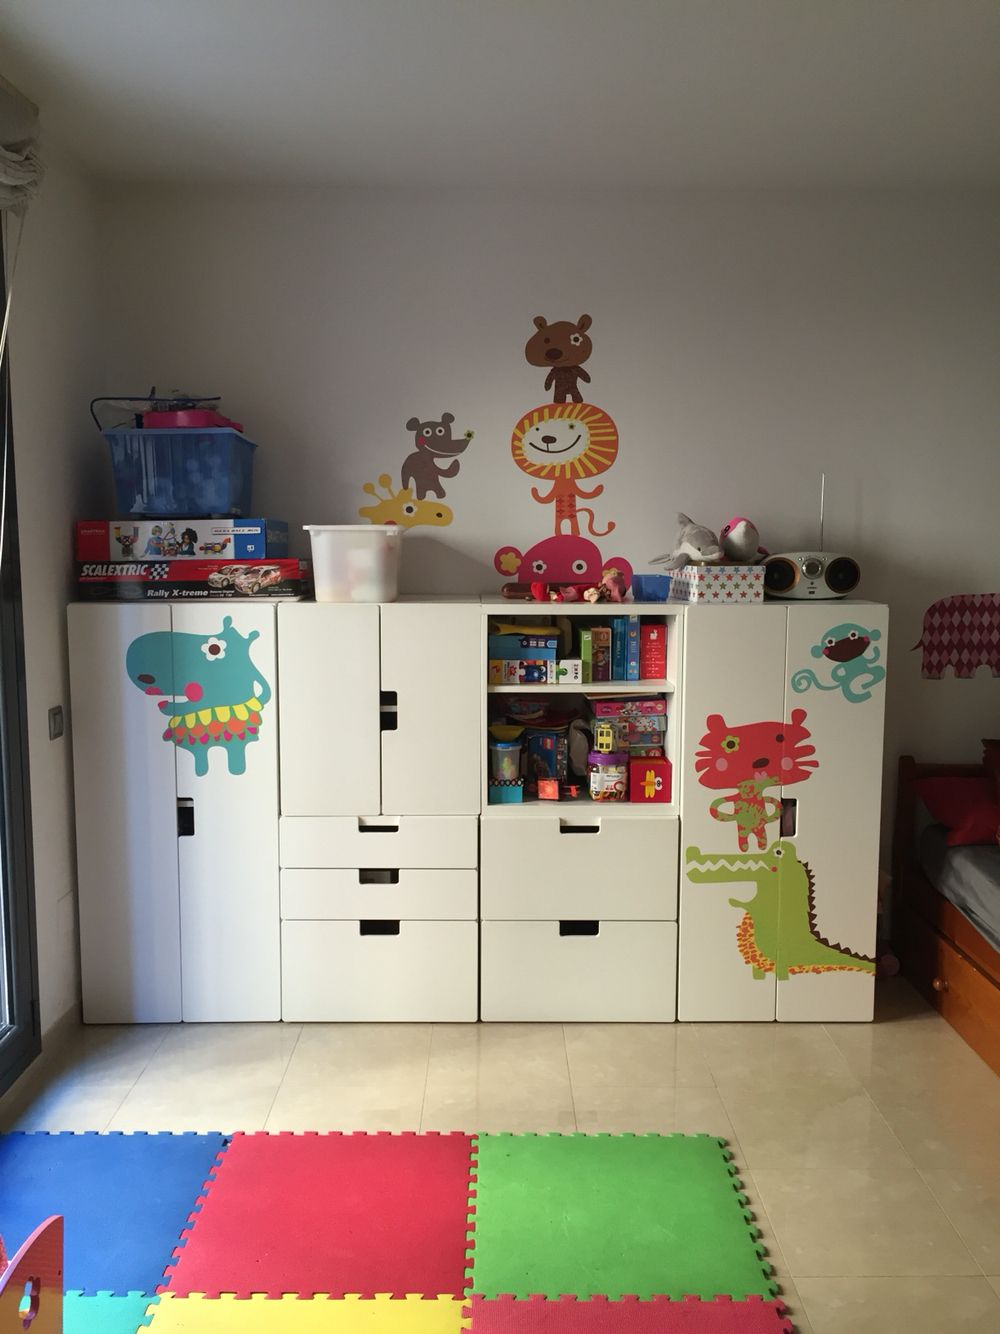 ikea stuva kids room n ria antonijoan i did it pinterest kinderzimmer kinderzimmer ideen. Black Bedroom Furniture Sets. Home Design Ideas